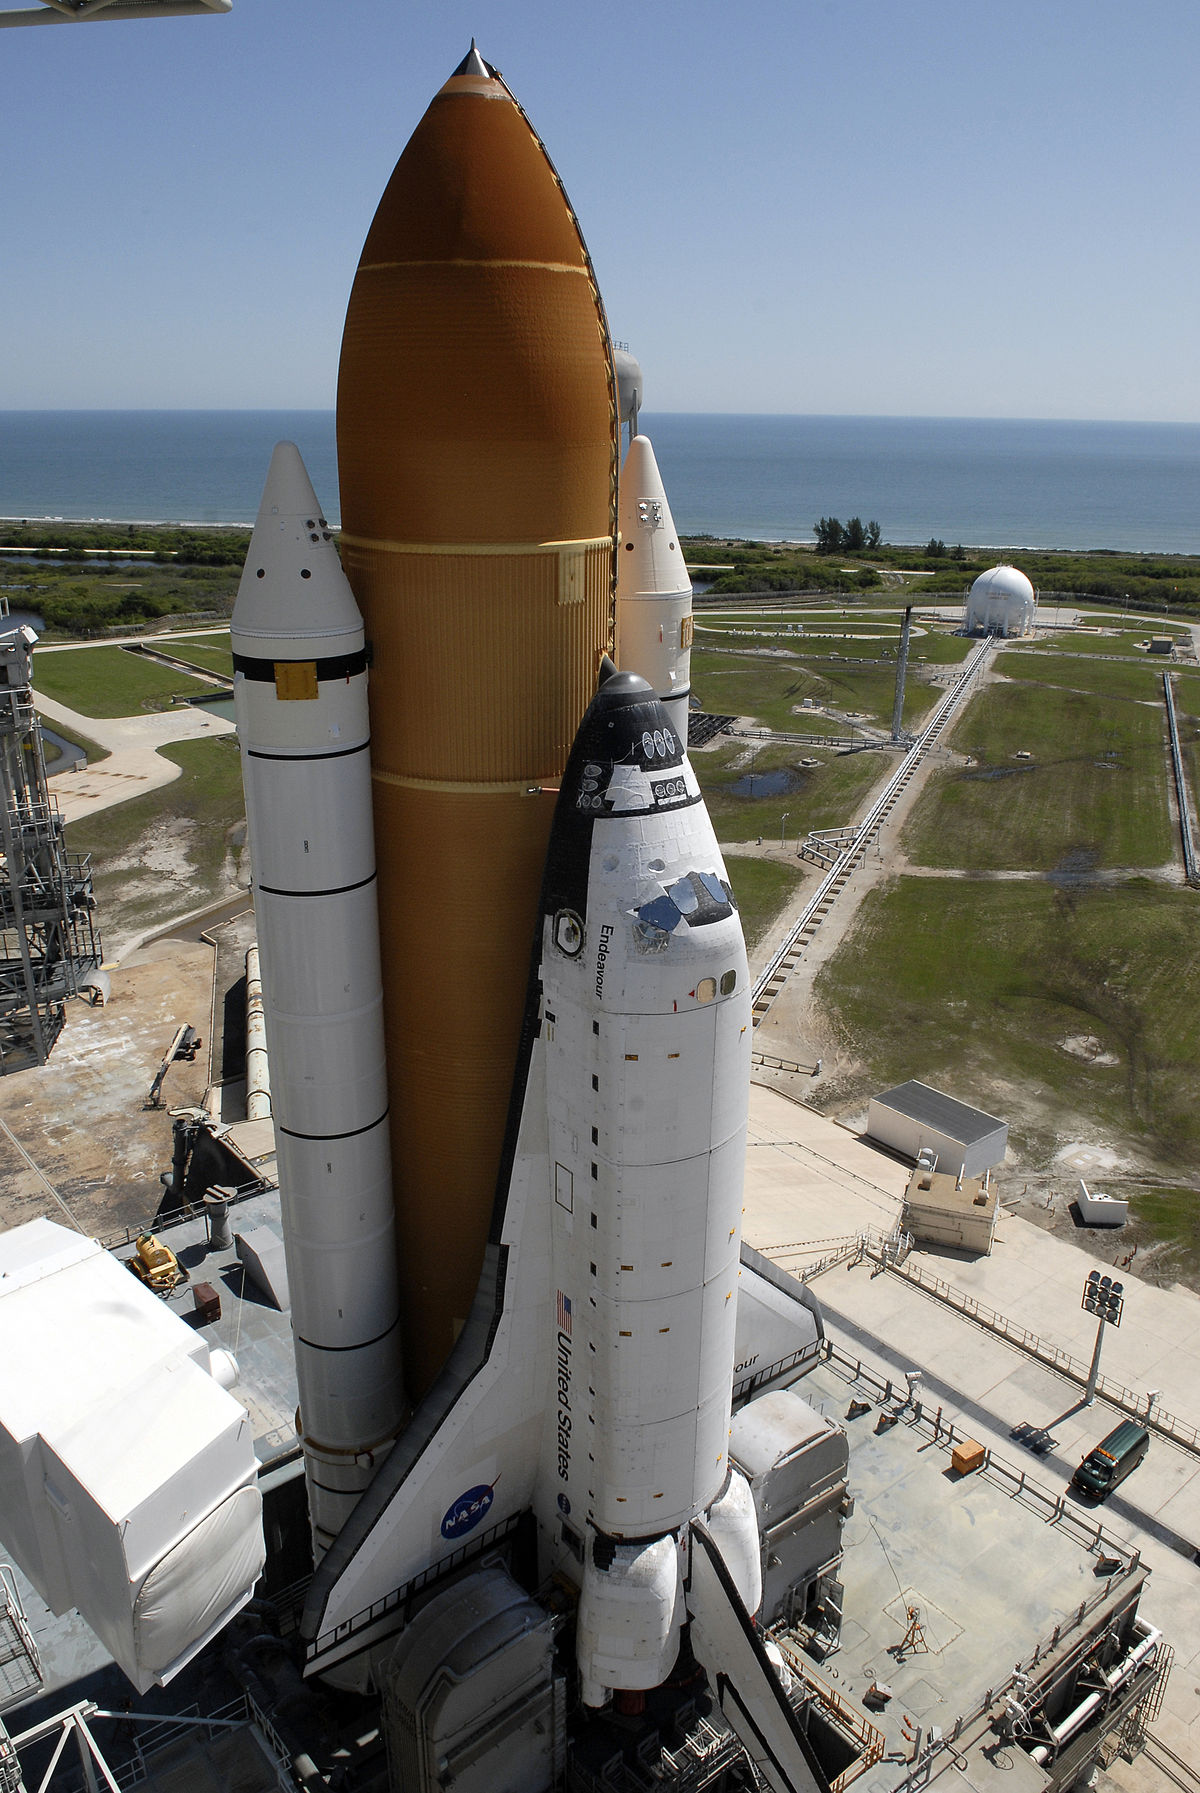 space shuttle gallery - photo #13